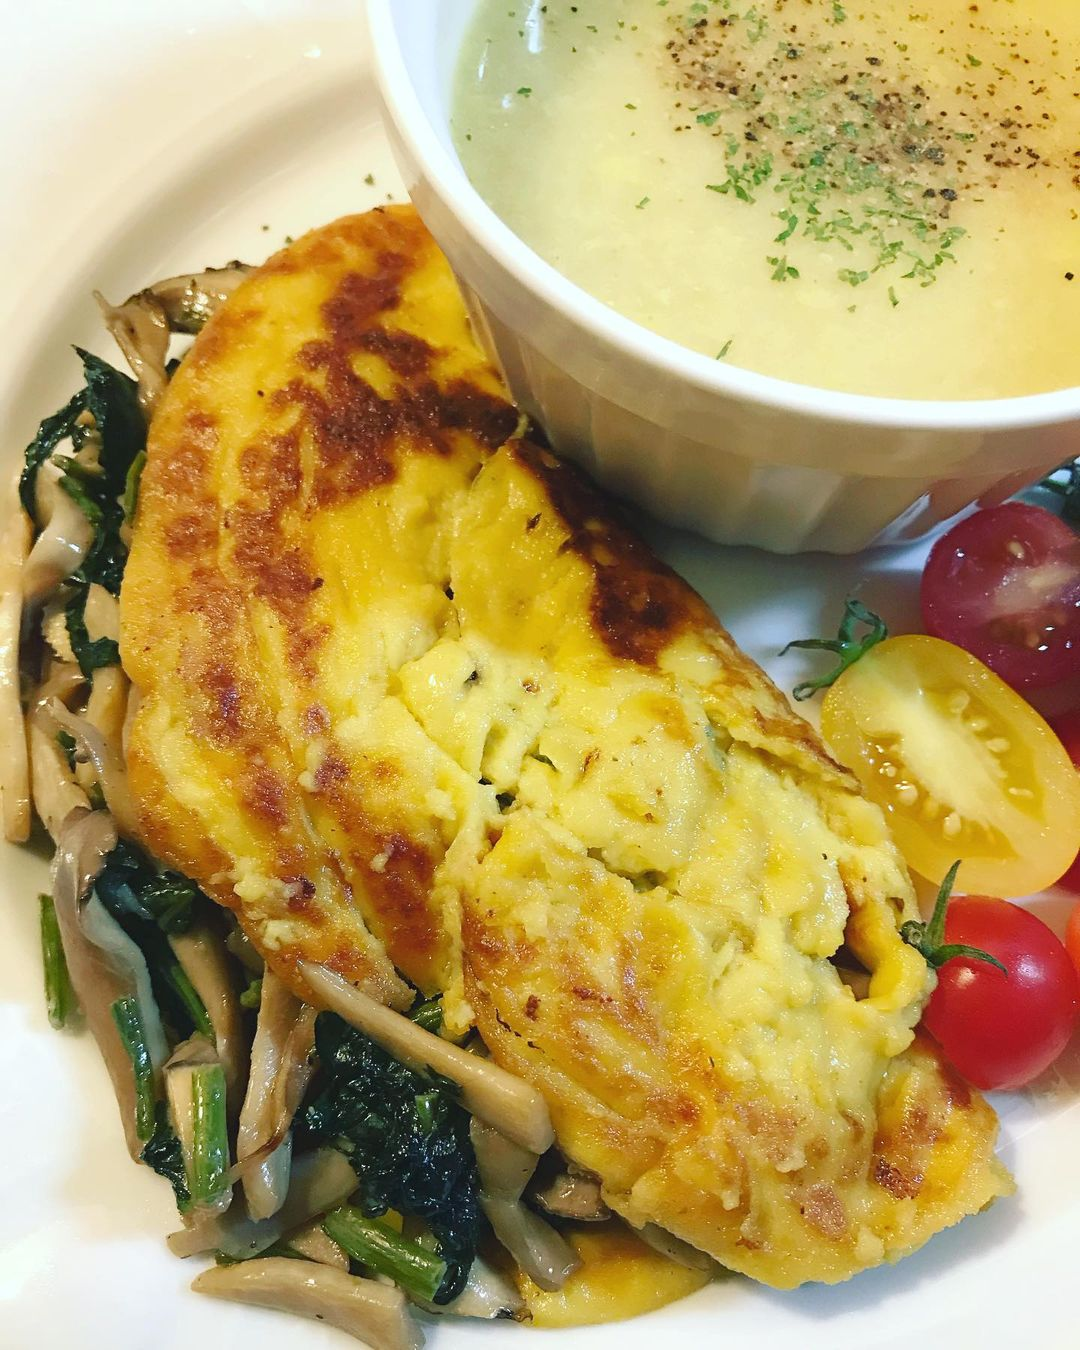 eggless mushroom and spinach omelette display image  cb0cd725